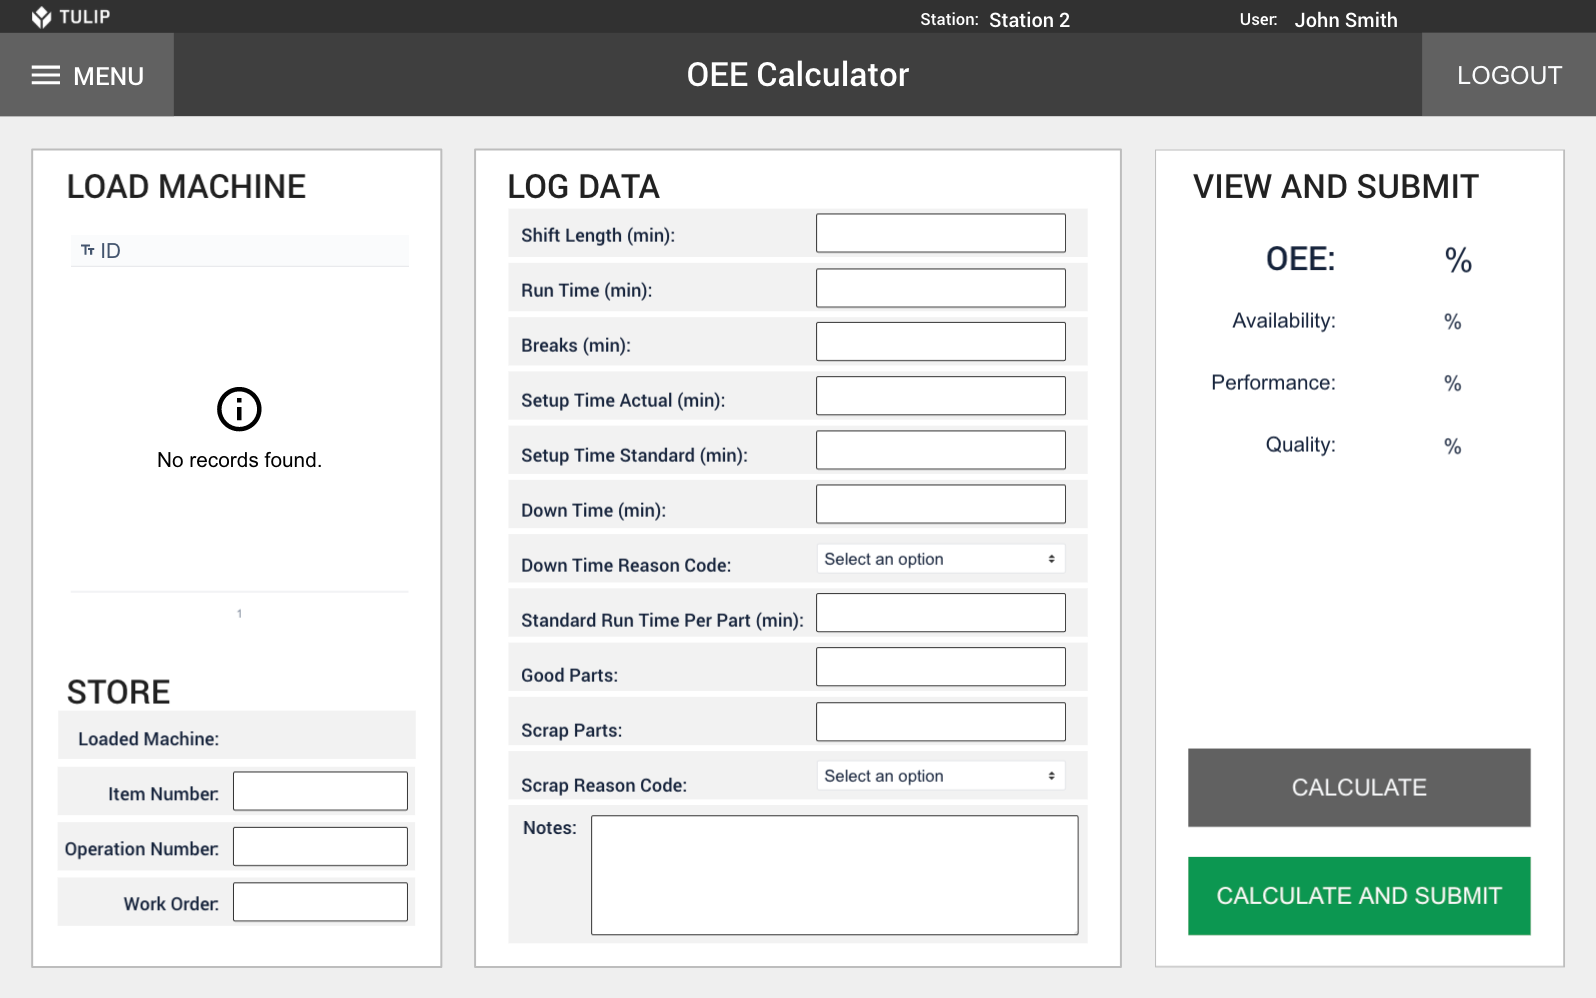 Image of Overall Equipment Effectiveness (OEE) Calculator app